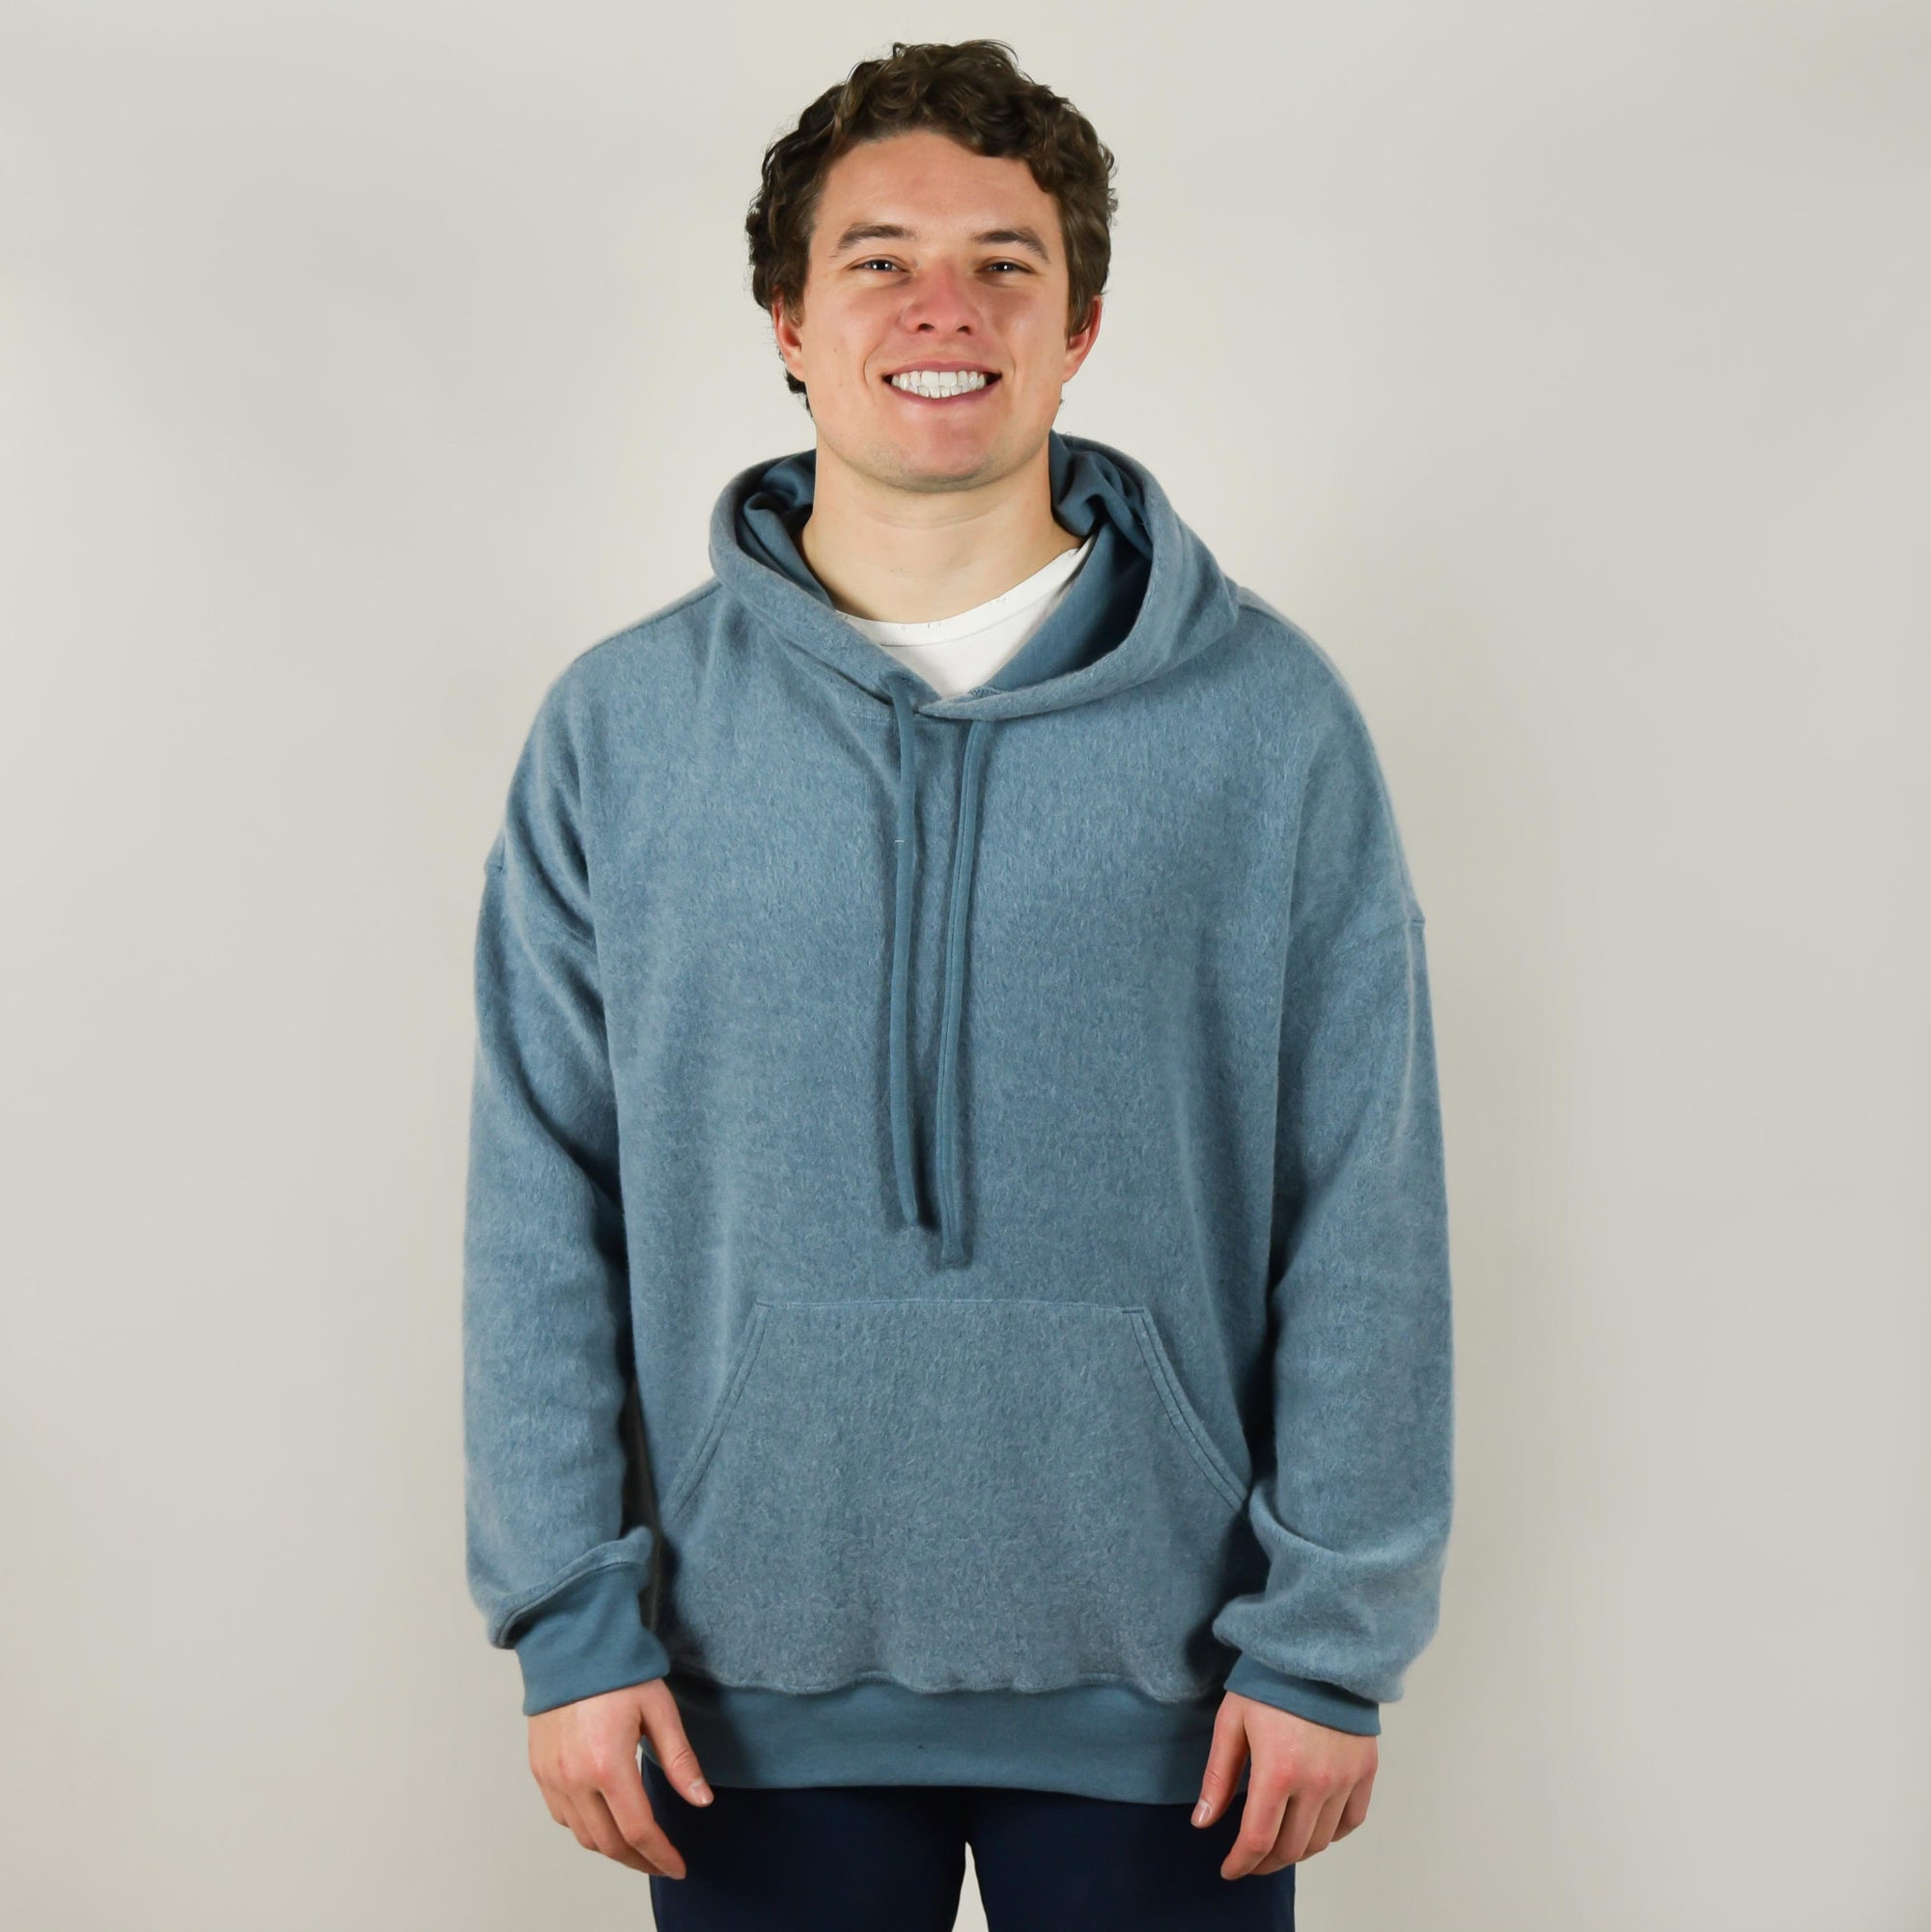 Model wearing Bella Canvas 3329 Sueded Fleece Pullover Hoodie